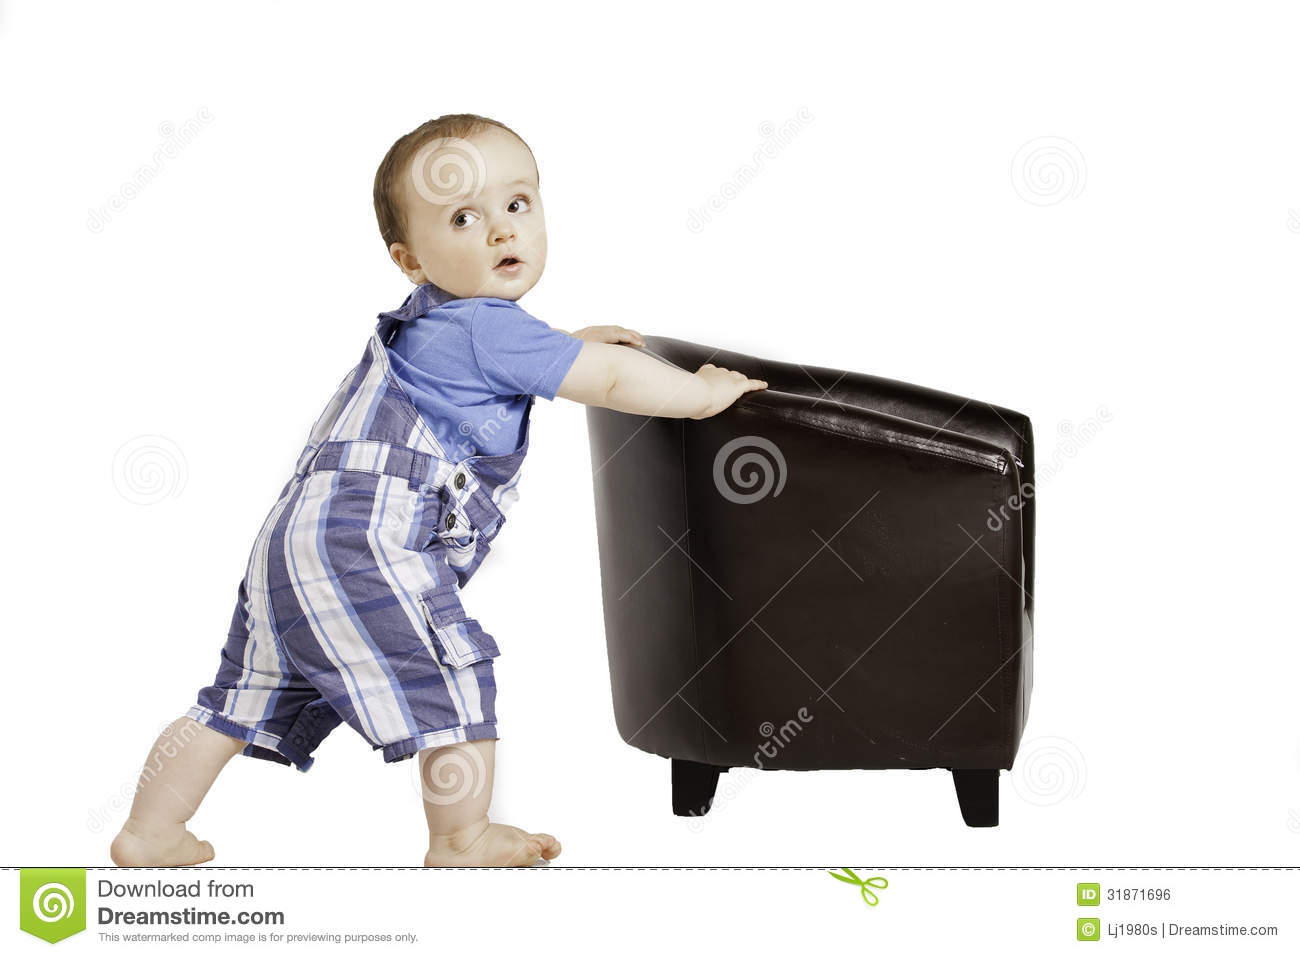 Cute Baby Pushes A Small Chair Stock Photo Image Of Cute